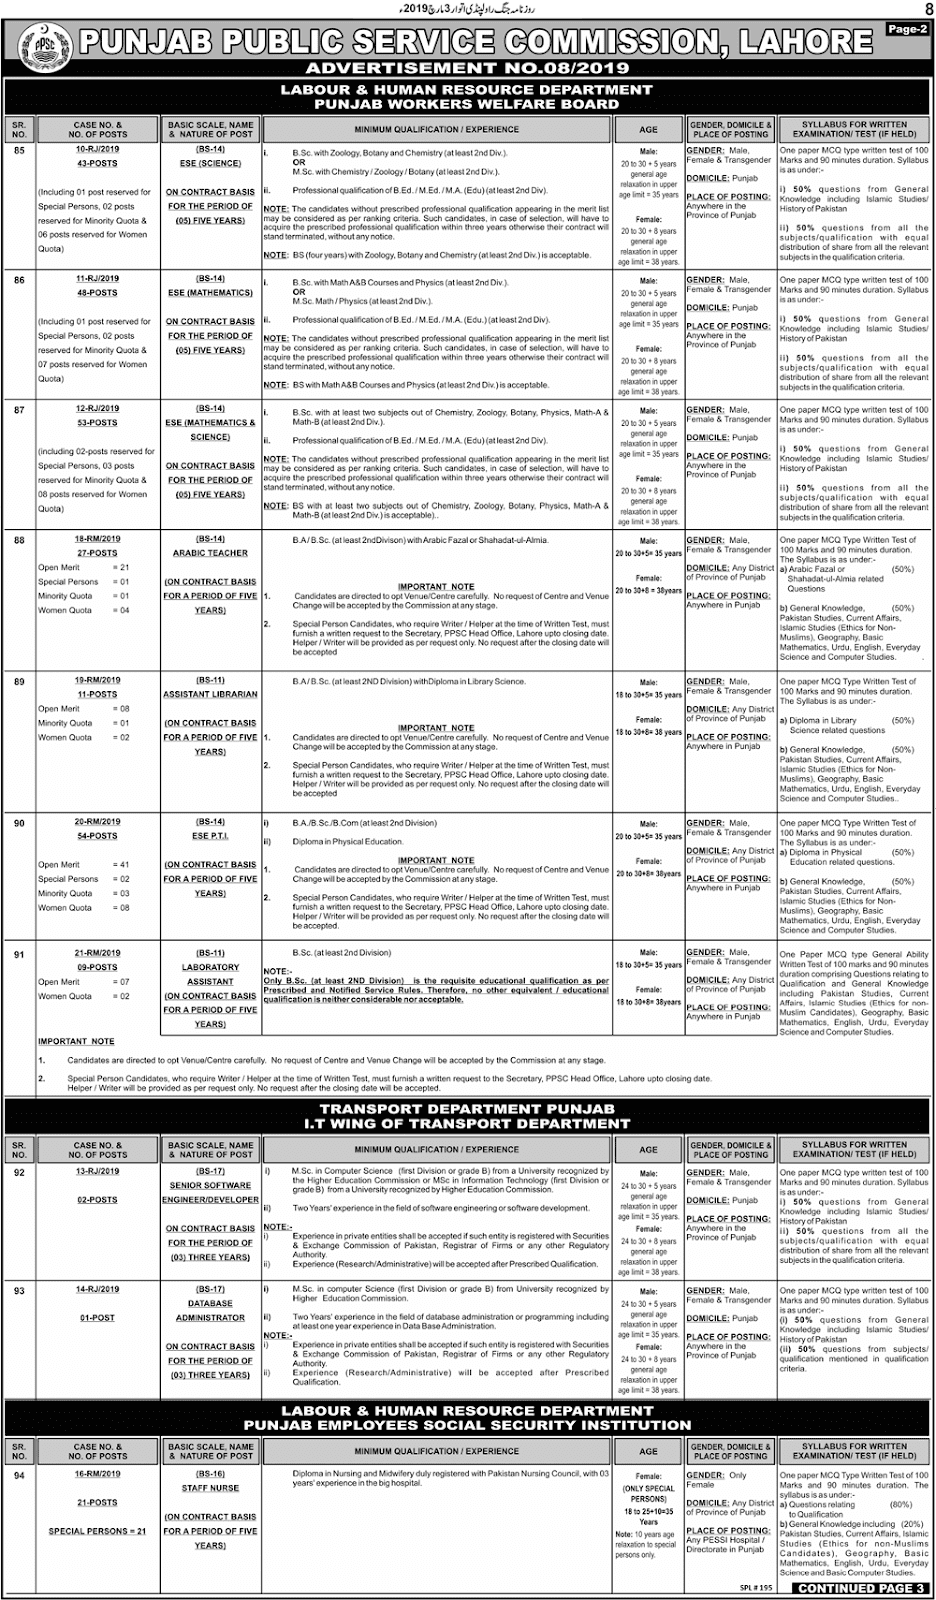 PPSC Advertisement 08/2019 Page No. 2/3